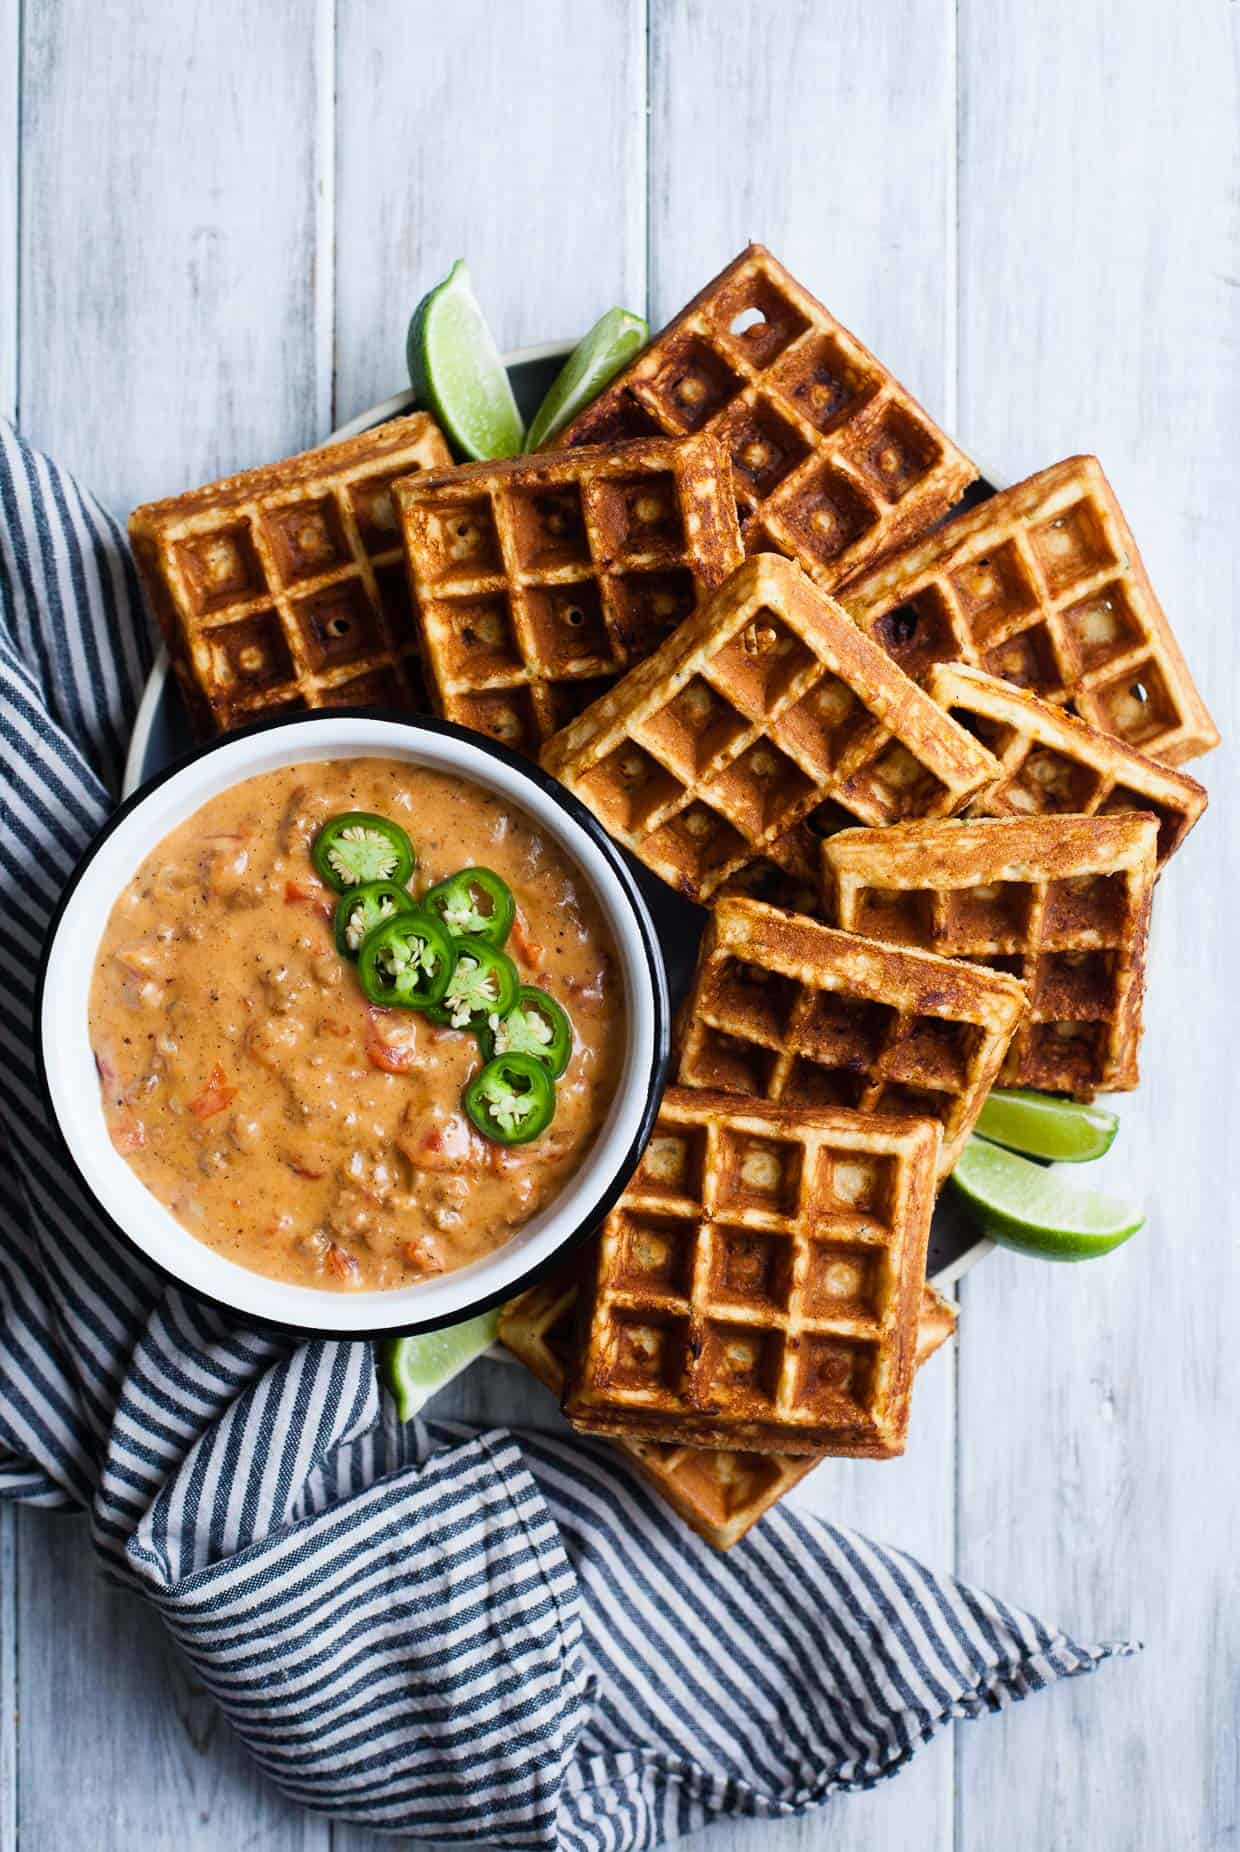 Cheddar Jalapeno Cornbread Waffles with Turkey Chile Con Queso Dip {gluten-free}